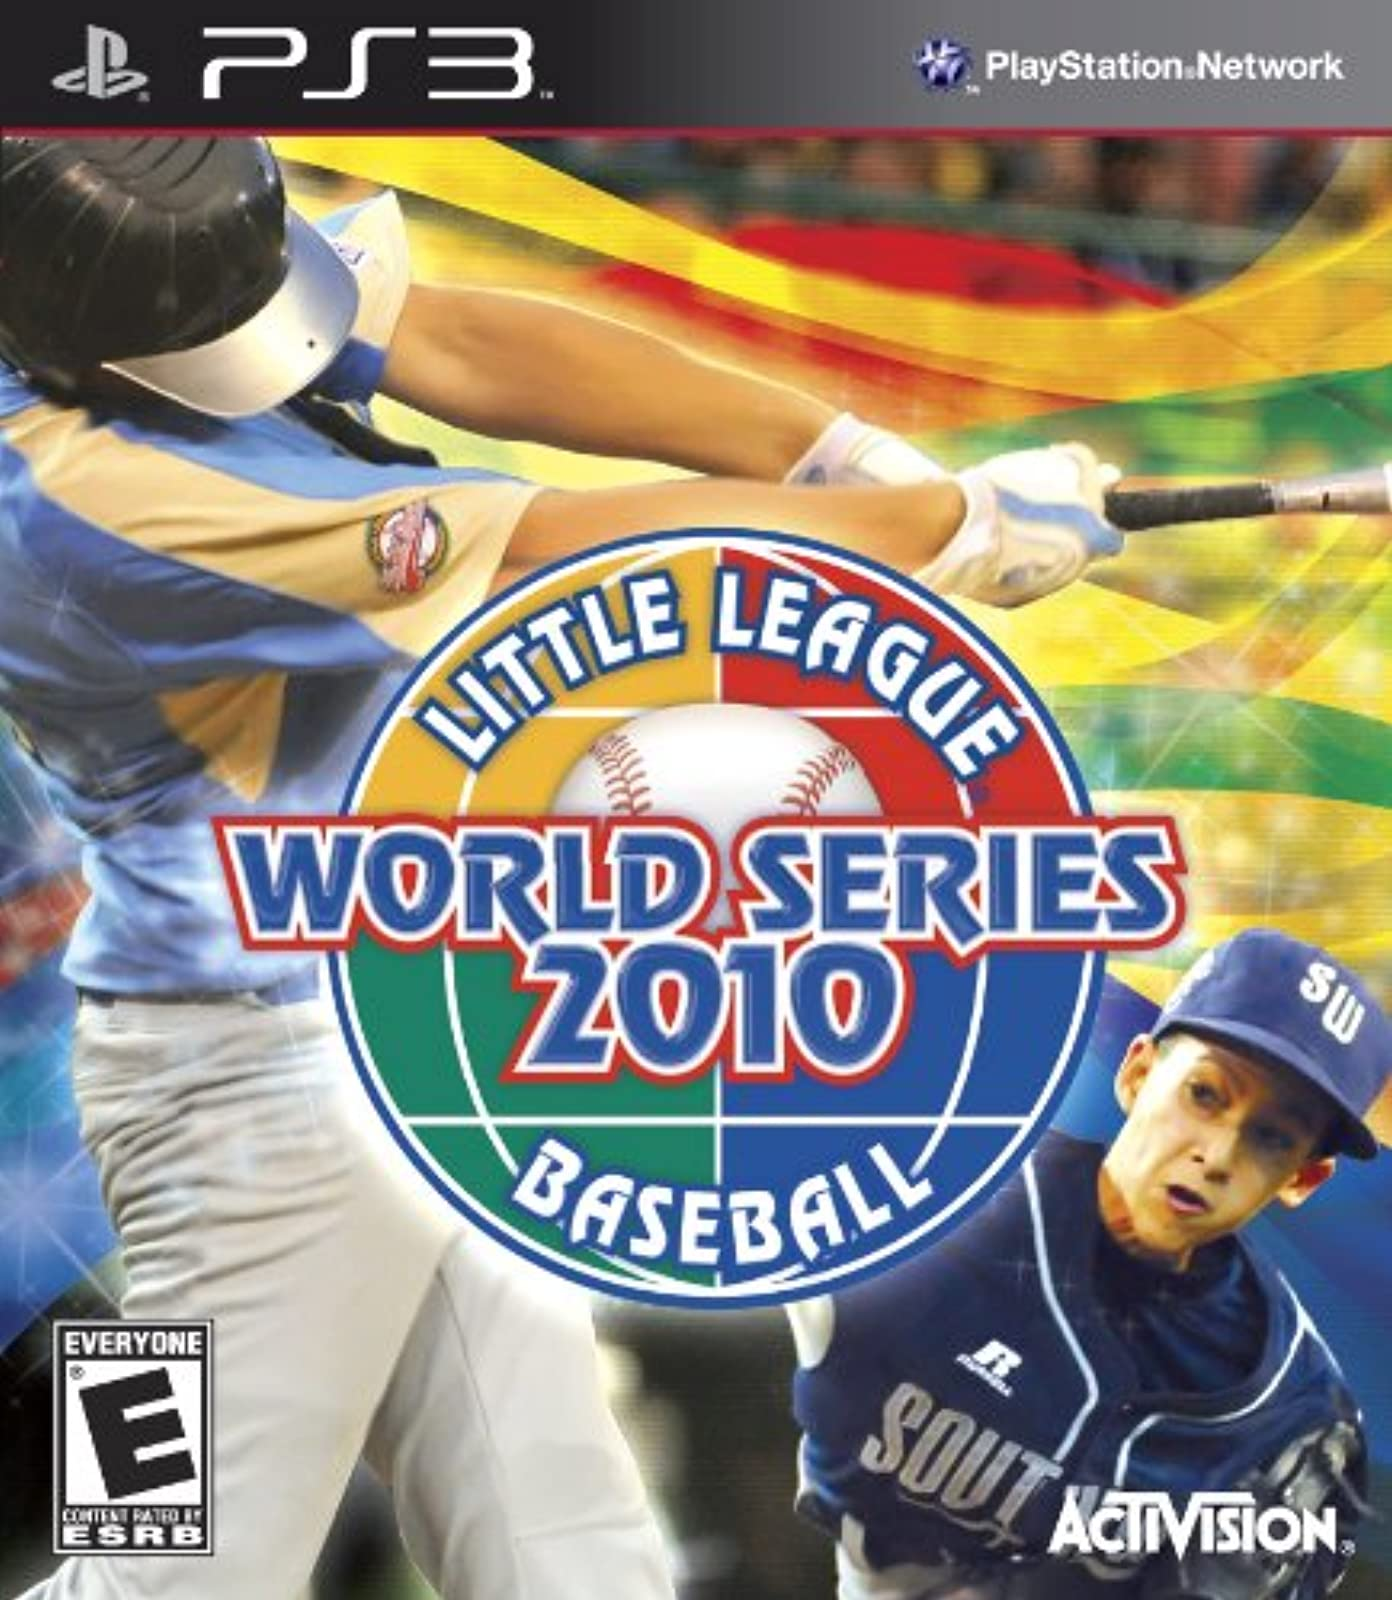 Little League World Series 2010 For PlayStation 3 PS3 Baseball